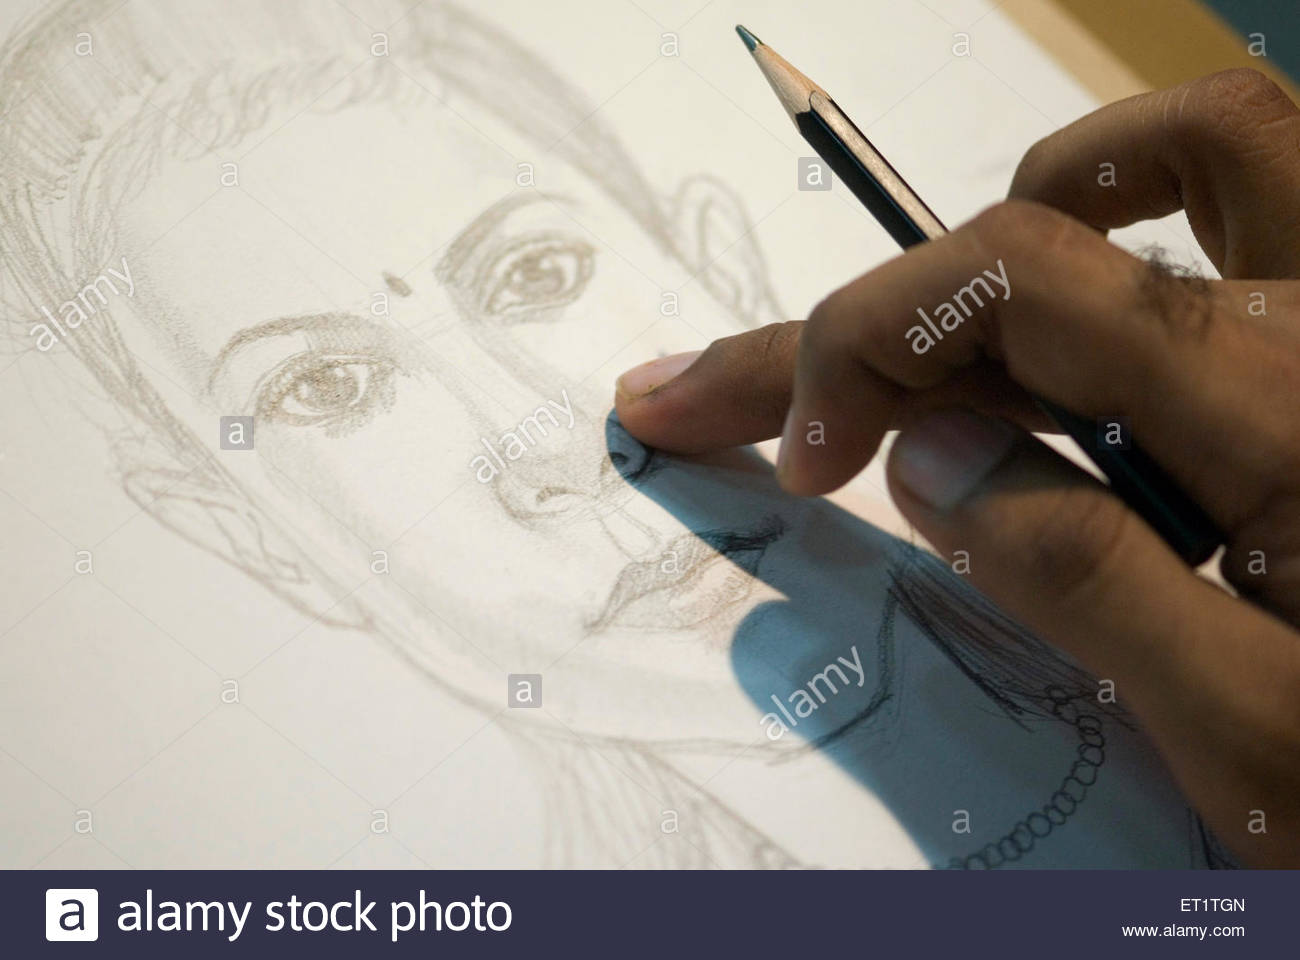 An artist making a girl caricature sketch drawing with pencil on ...